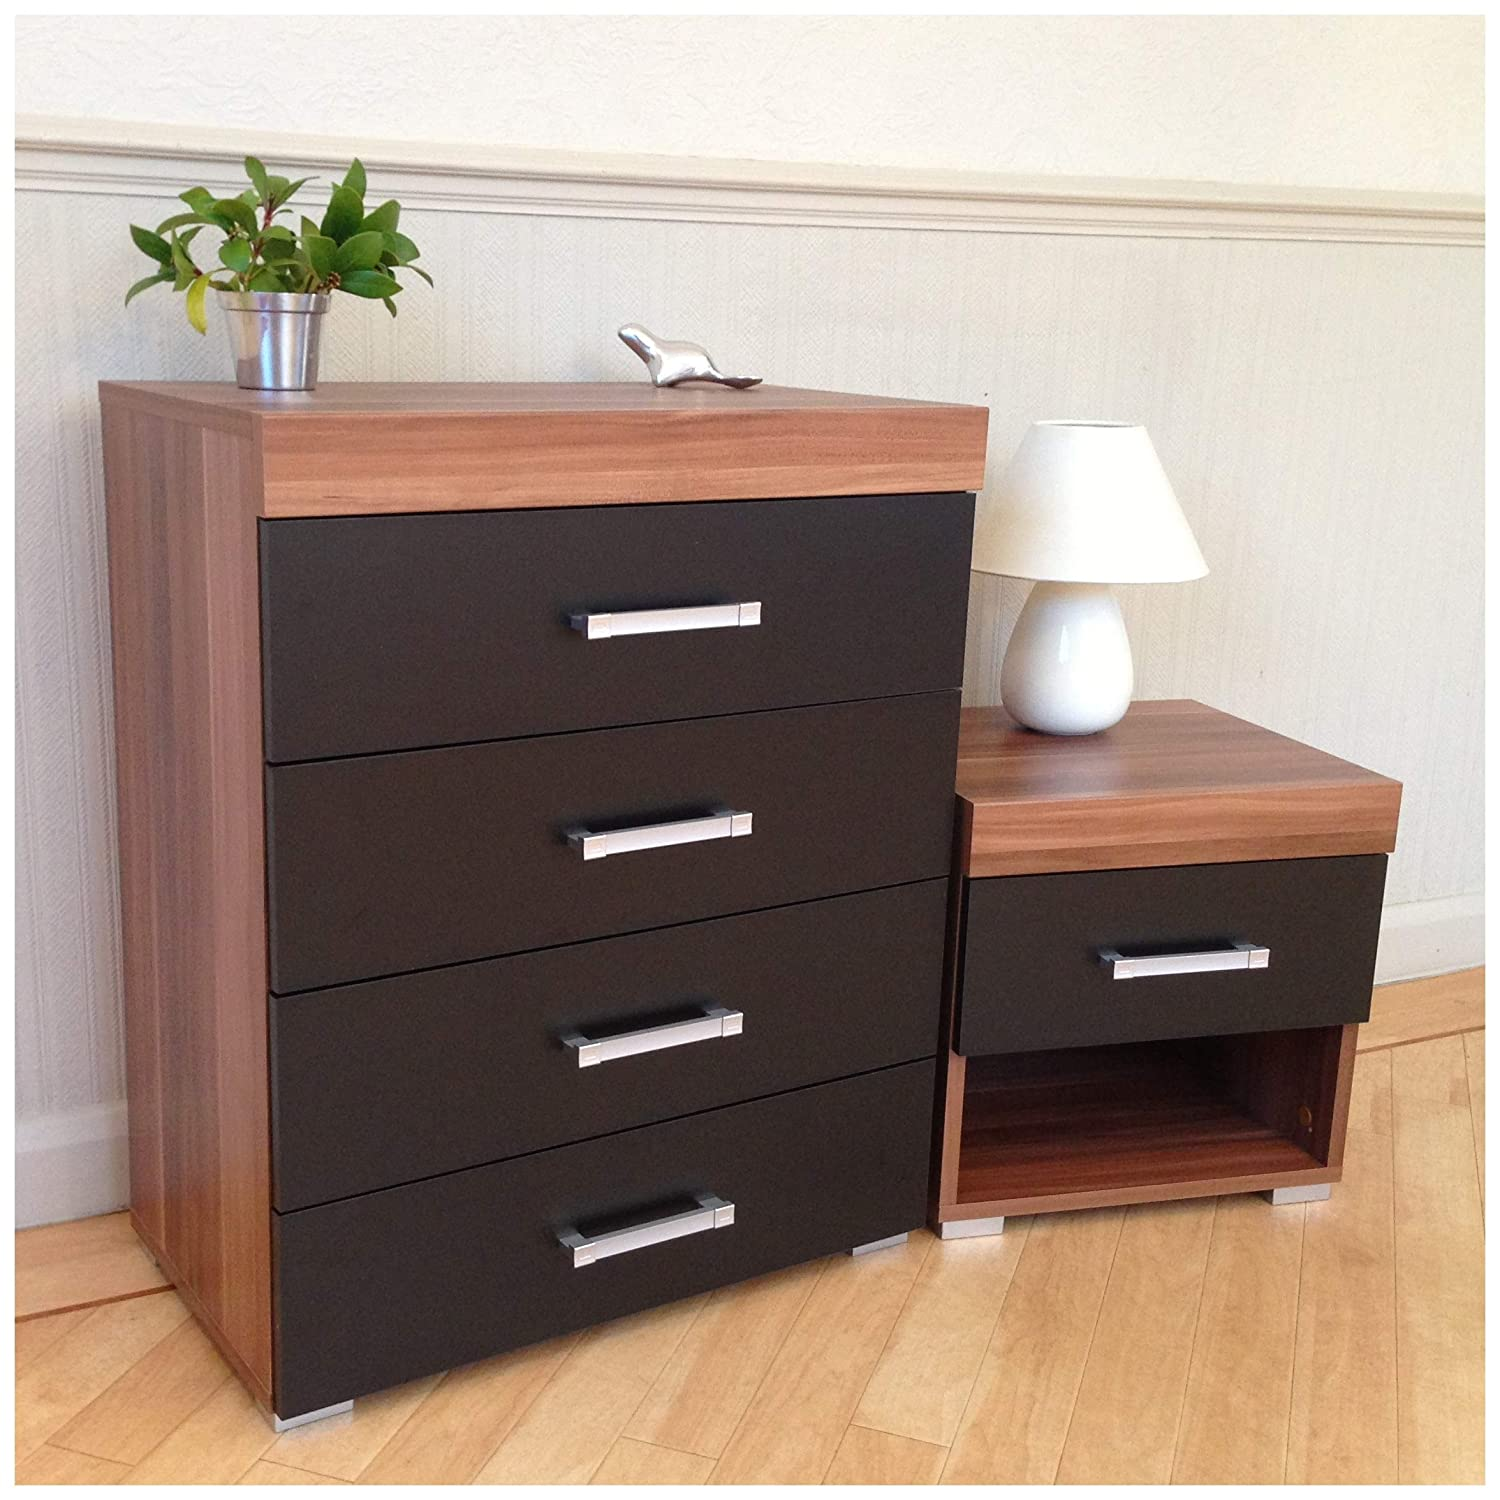 DRP Trading Chest of 4 Drawers & 1 Drawer Bedside Table in Black & Walnut Bedroom Furniture